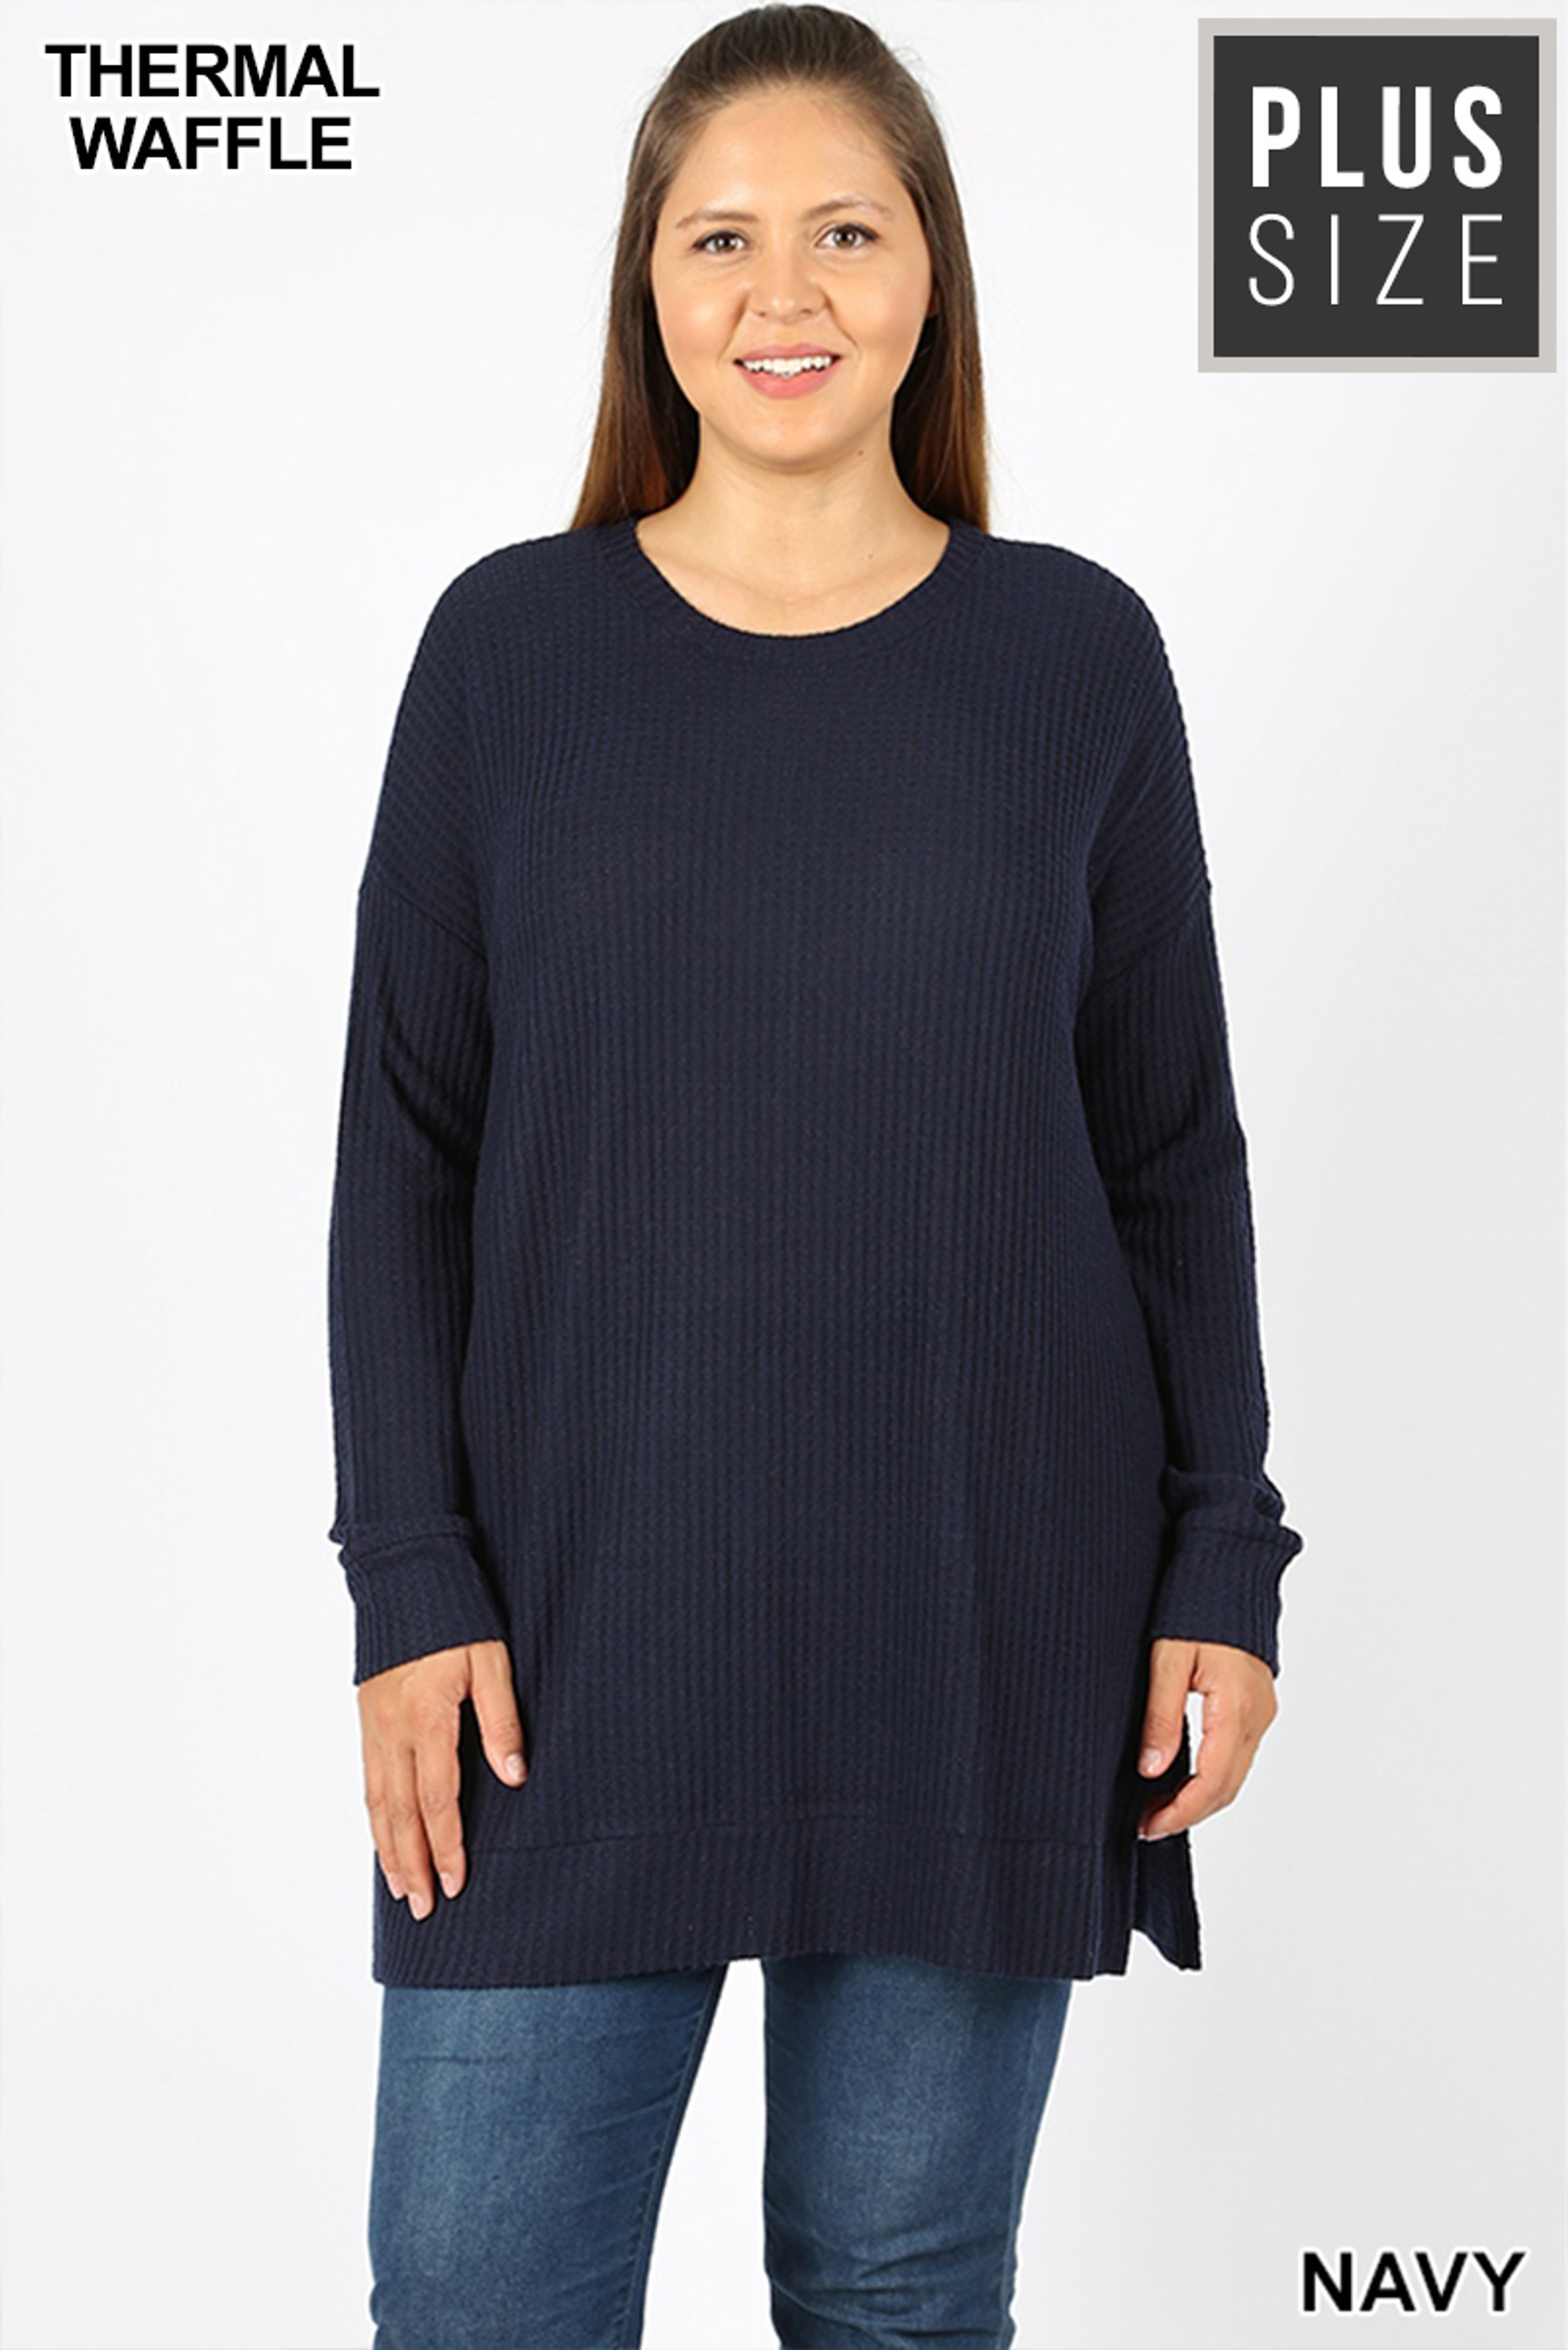 Front image of Navy Brushed Thermal Waffle Knit Round Neck Plus Size Sweater